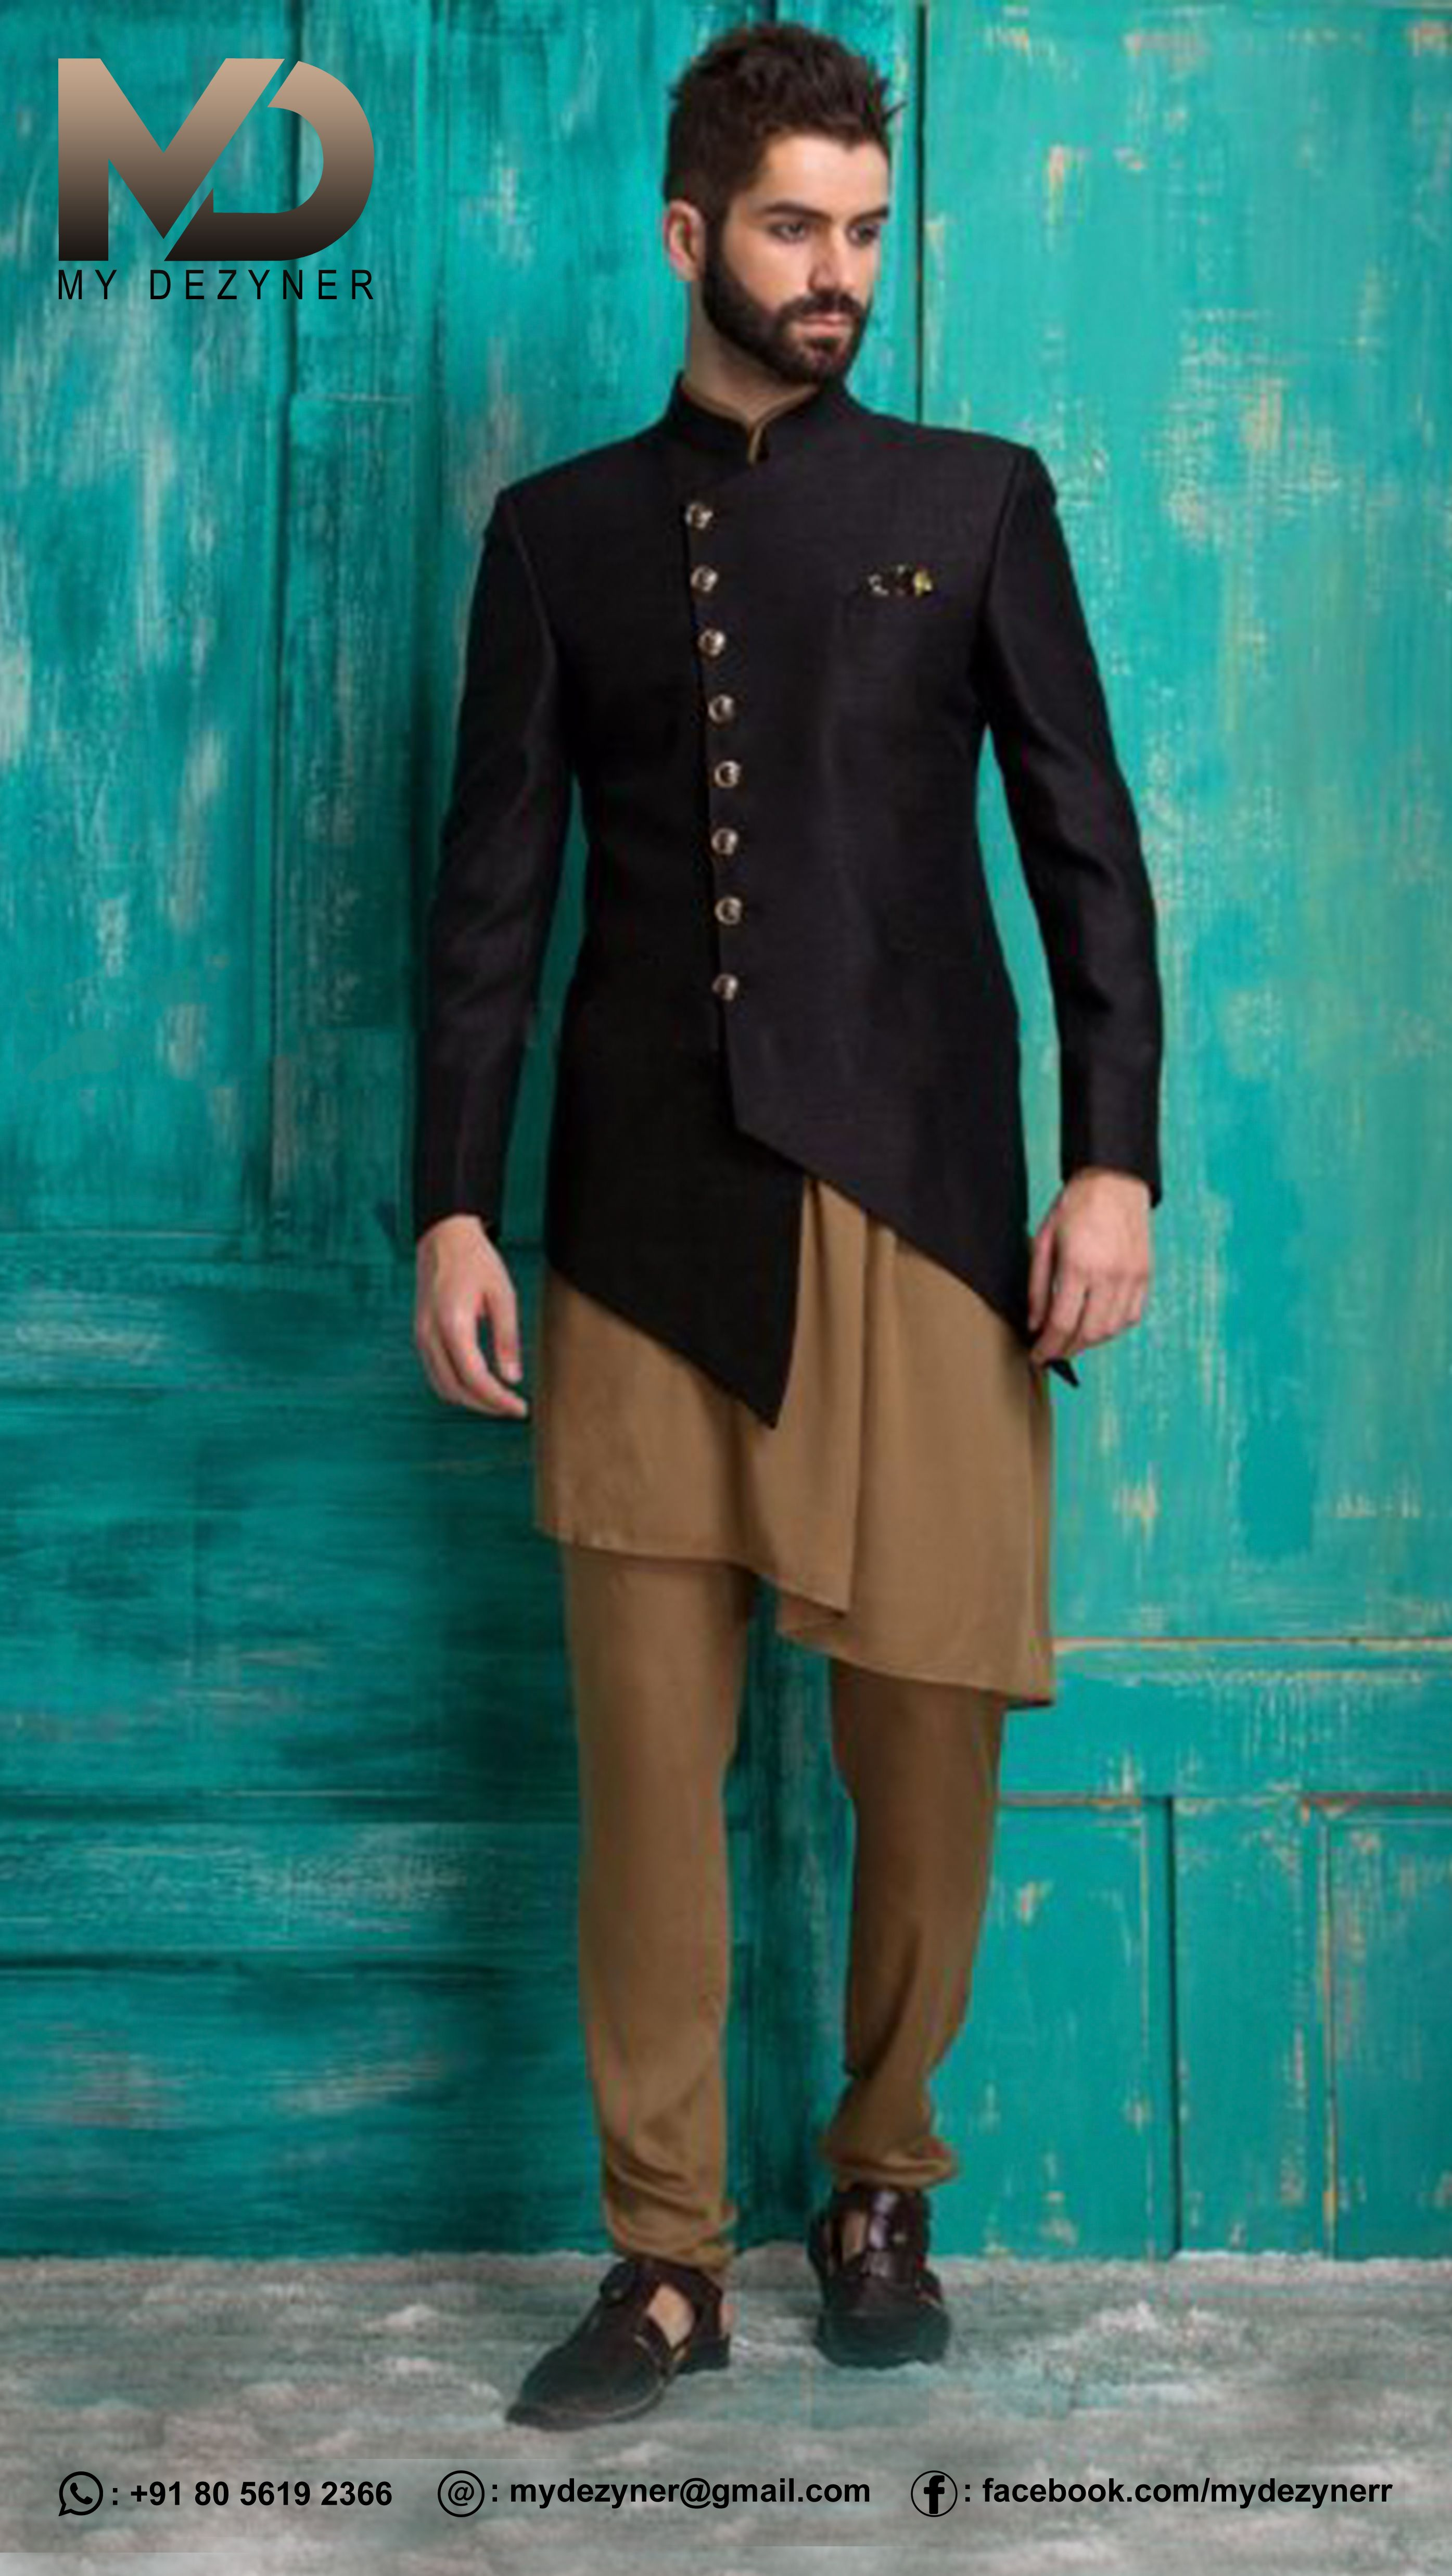 Pin by Zoya Qureshi on fashionista girl | Pinterest | Indian male ...